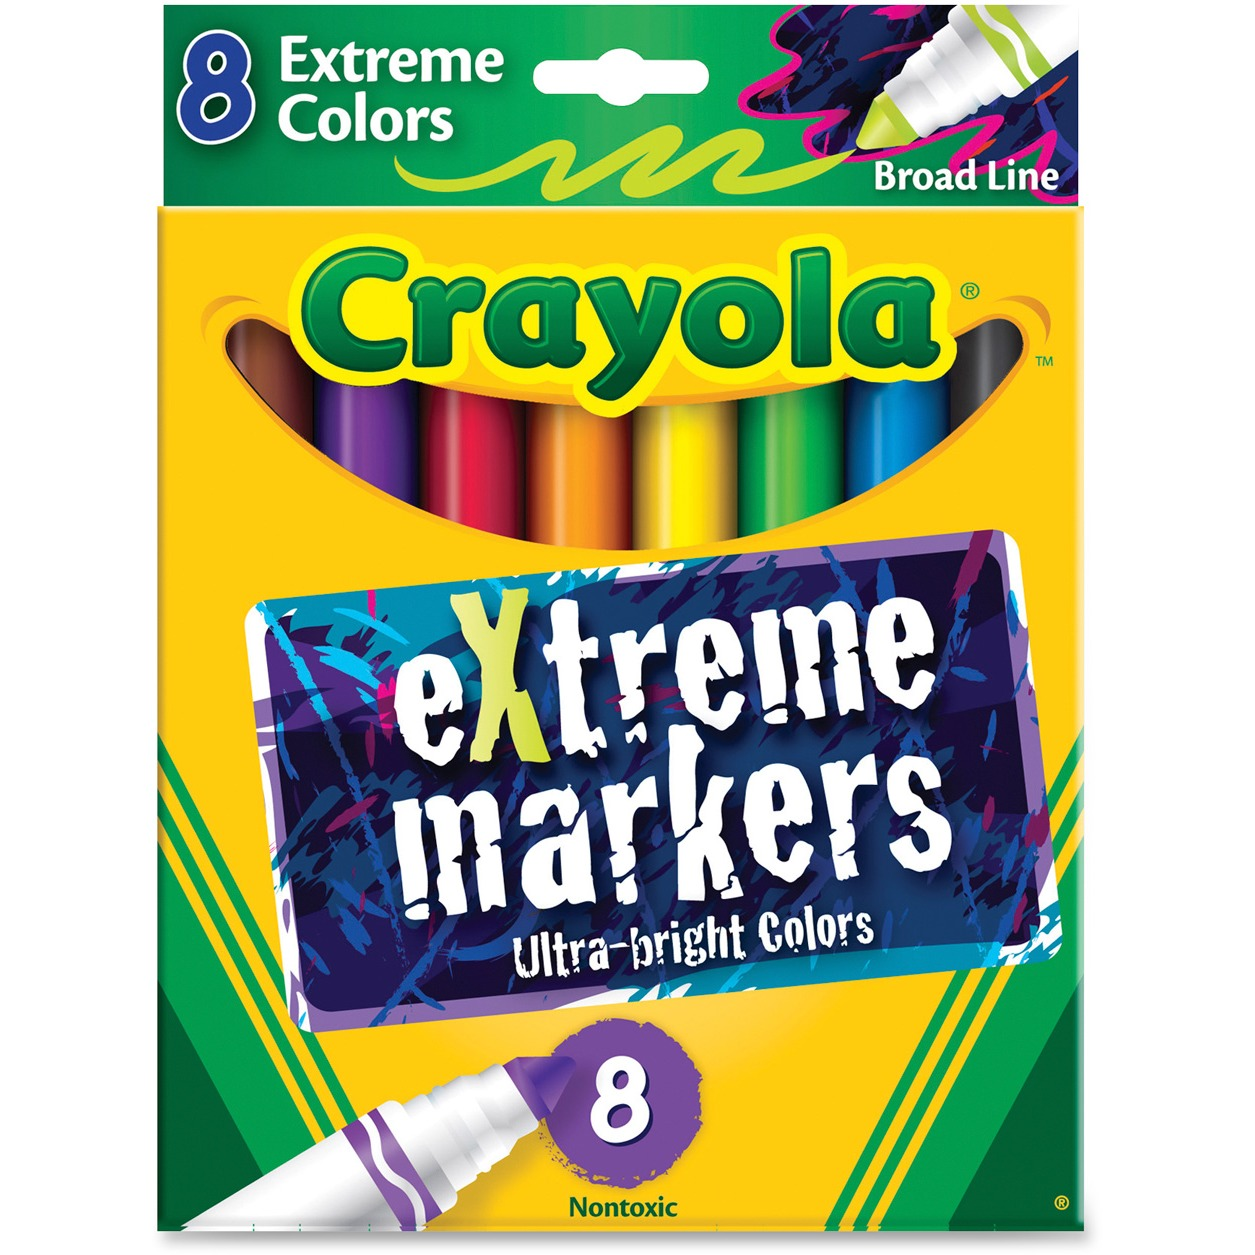 Crayola Extreme Color Marker, Assorted, 8/Pack